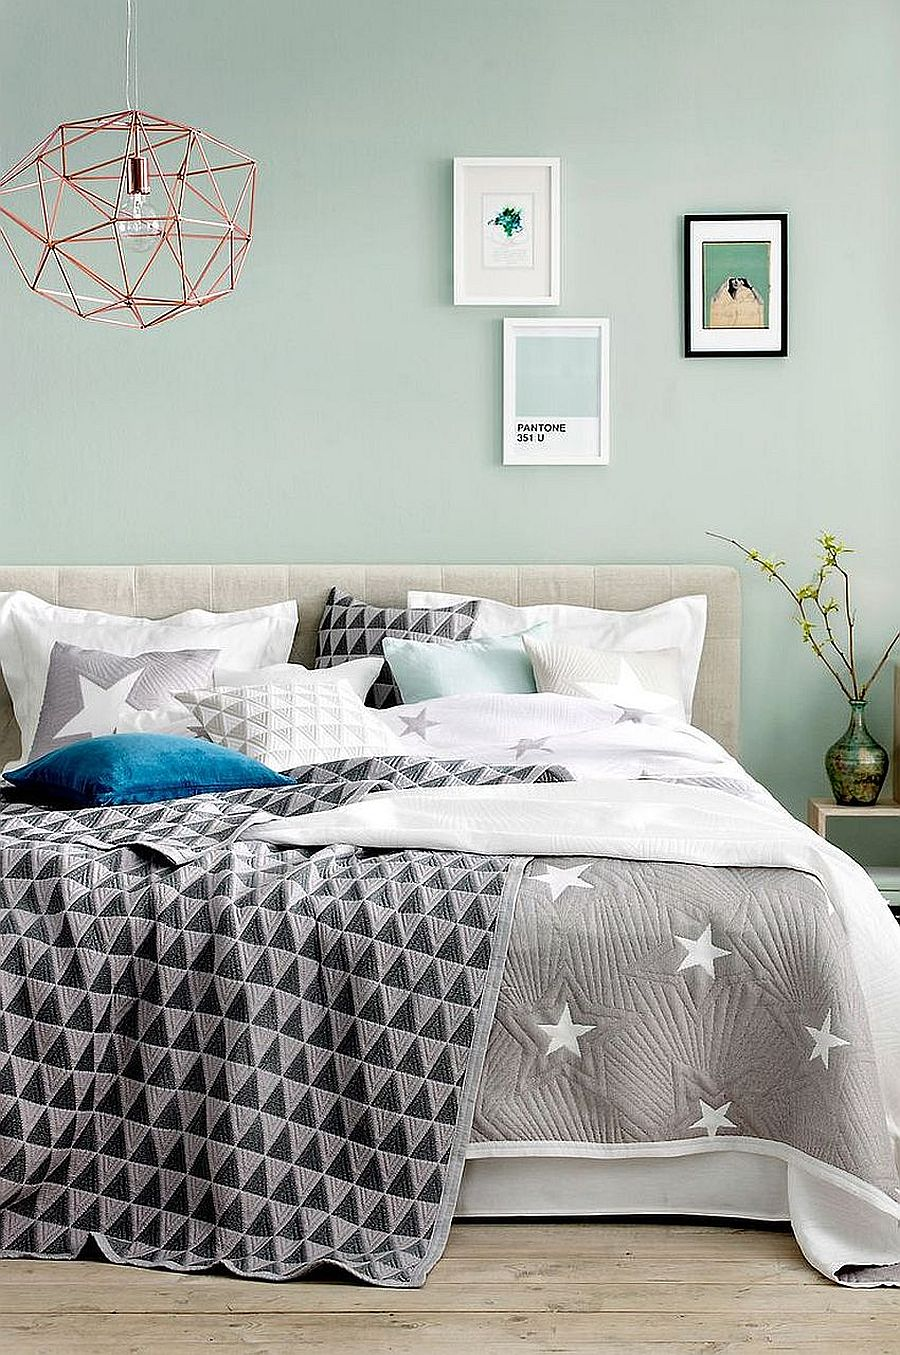 Dashing mint blue coupled with gray and white bediing in the modern bedroom